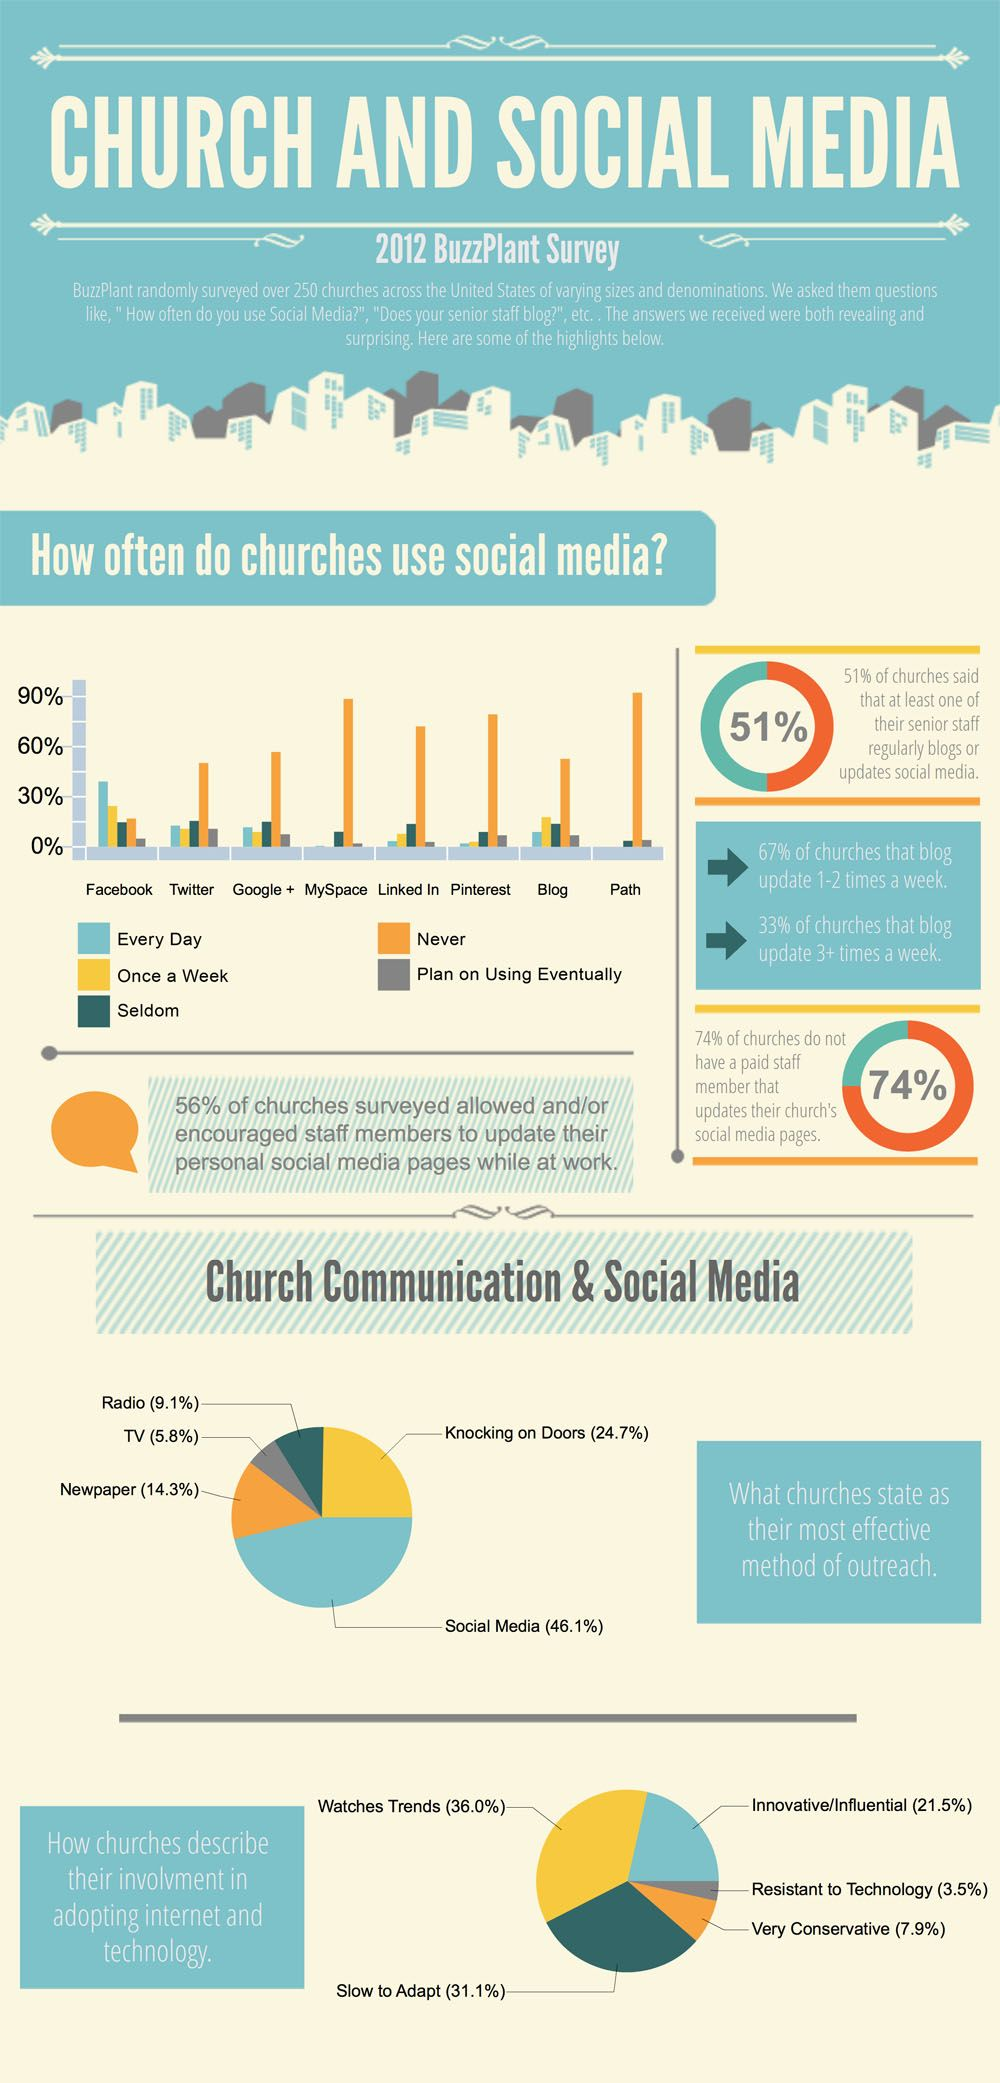 Communication between religious organizations and their followers has blossomed on social media. Many churches have turned to social networks to incre